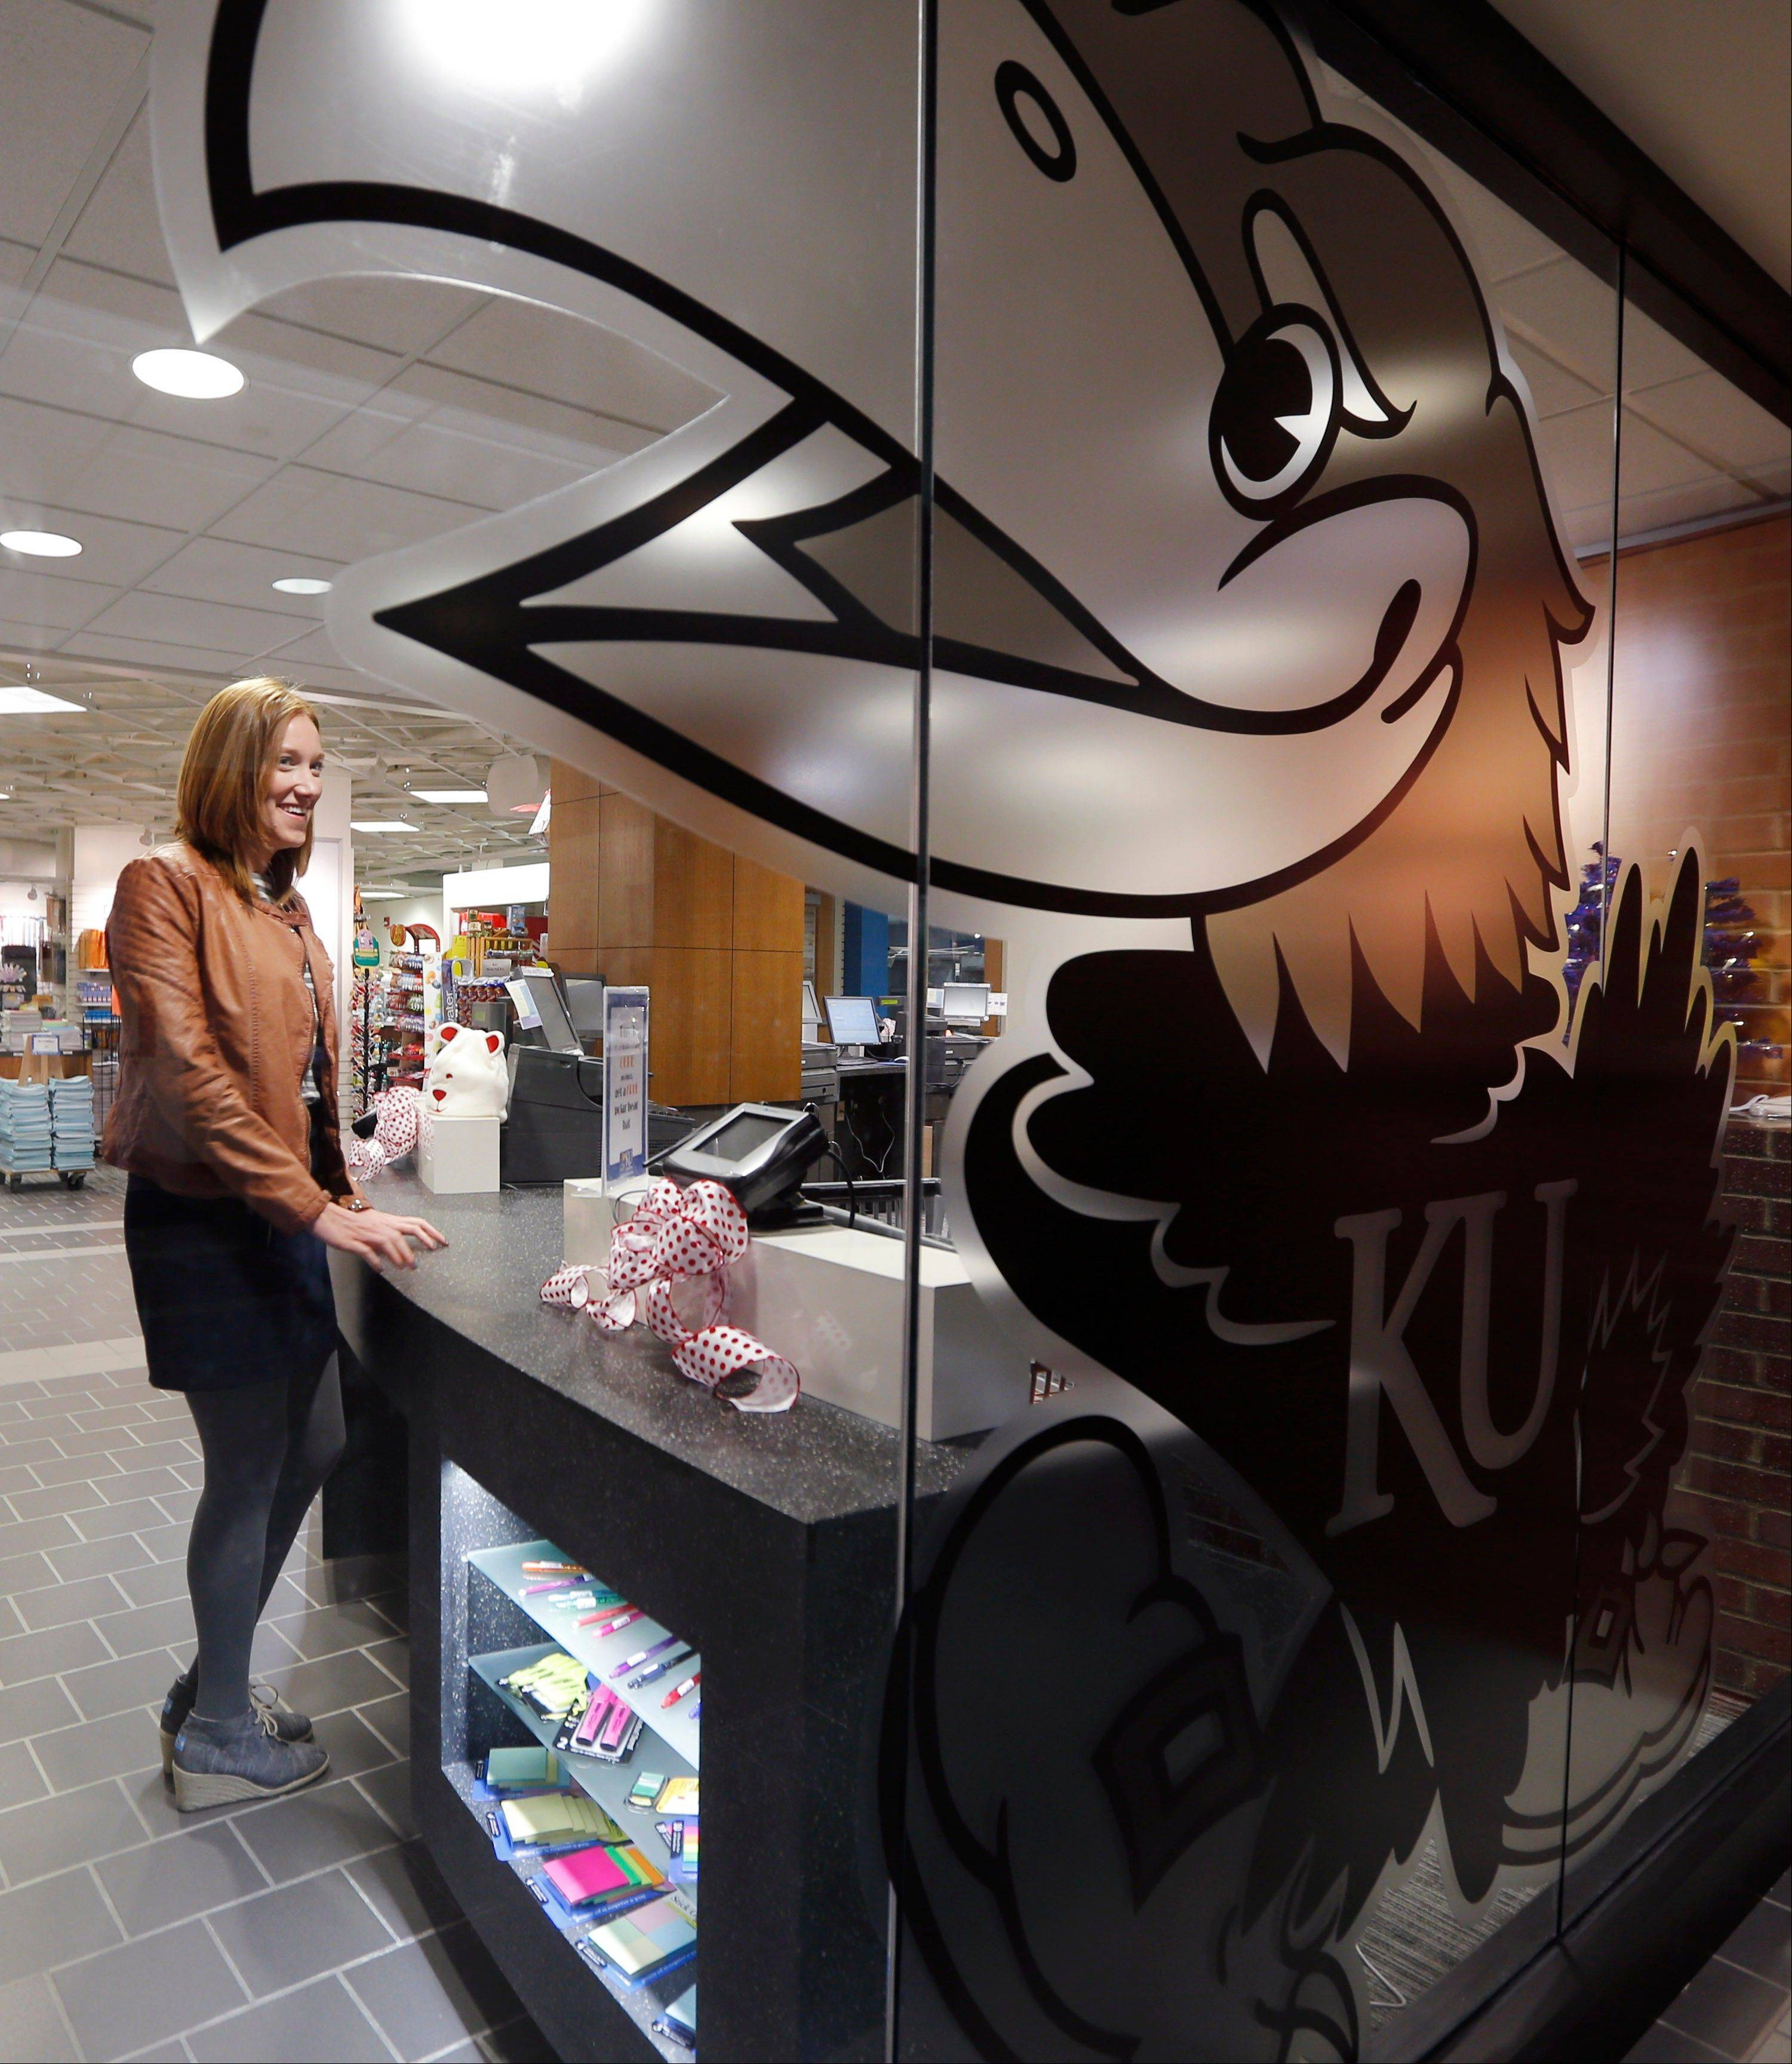 TJane Mahoney stands at a counter in the KU Bookstore on the University of Kansas campus in Lawrence, Kansas. About 320 colleges and universities offered tuition guarantees during the 2012-13 school year, according to an analysis of U.S. Department of Education data done by the National Association of Student Financial Aid Administrators. The schools represent about 6.7 percent of the nation�s nearly 4,800 institutions where students receive federal financial aid. Tuition rates for freshmen are guaranteed for four years at Kansas.